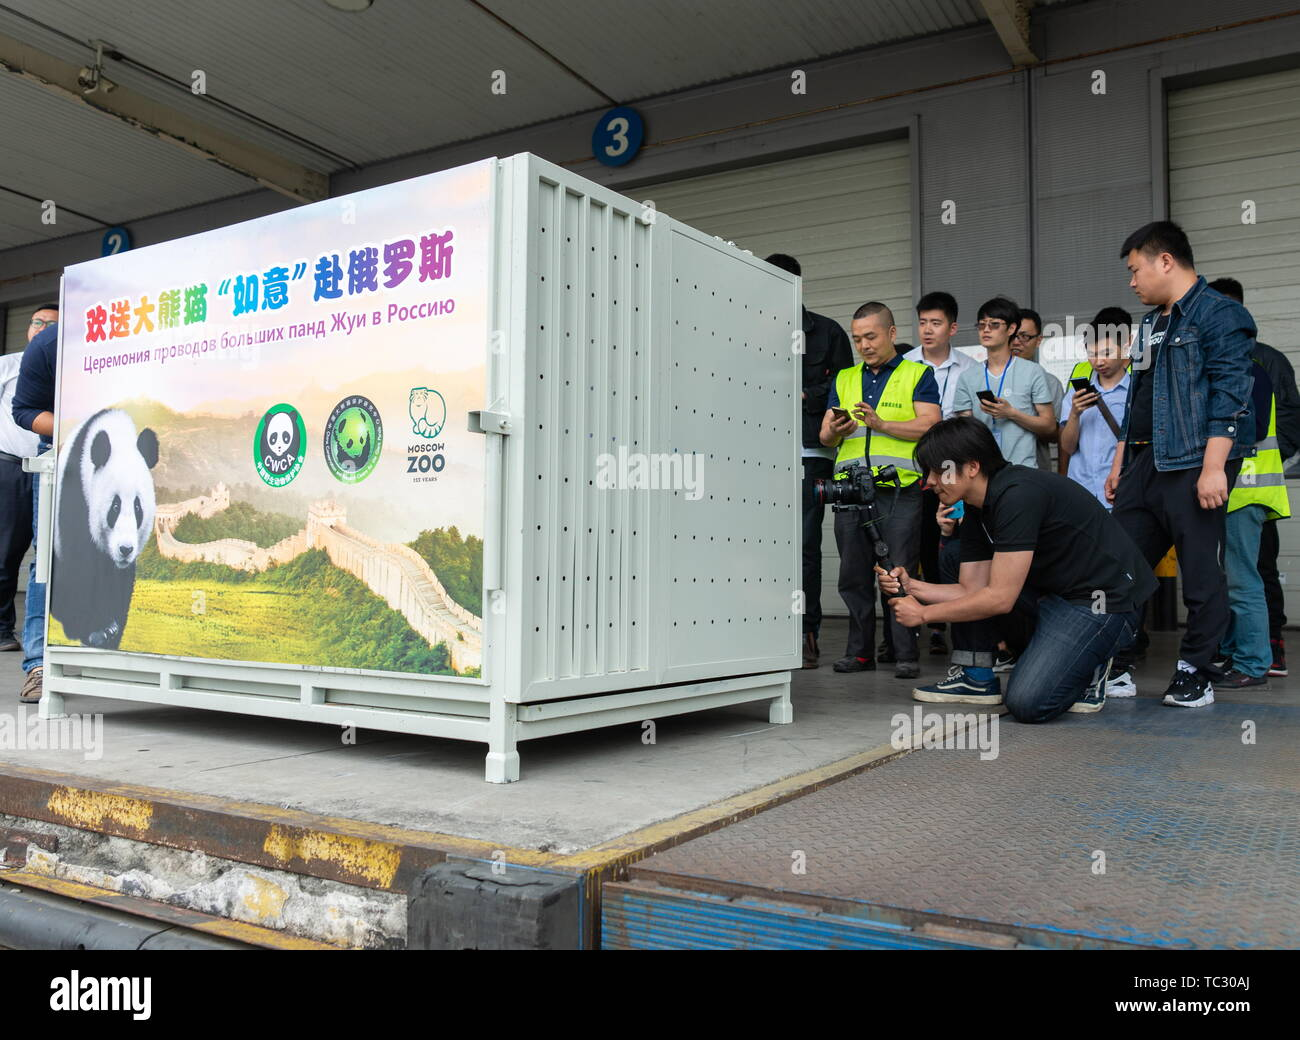 China. 29th Apr, 2019. CHENGDU, SICHUAN PROVINCE, CHINA - JUNE 5, 2019: Pictured in this file image dated April 29, 2019 are people during a ceremony to send giant pandas. 3-year-old Ru Yi and 2-year-old Ding Ding are sent to the Moscow Zoo. The opening of the Moscow Zoo's panda pavilion is to be attended by Russian President Vladimir Putin and Chinese President Xi Jinping. File image/Artyom Ivanov/TASS Credit: ITAR-TASS News Agency/Alamy Live News - Stock Image